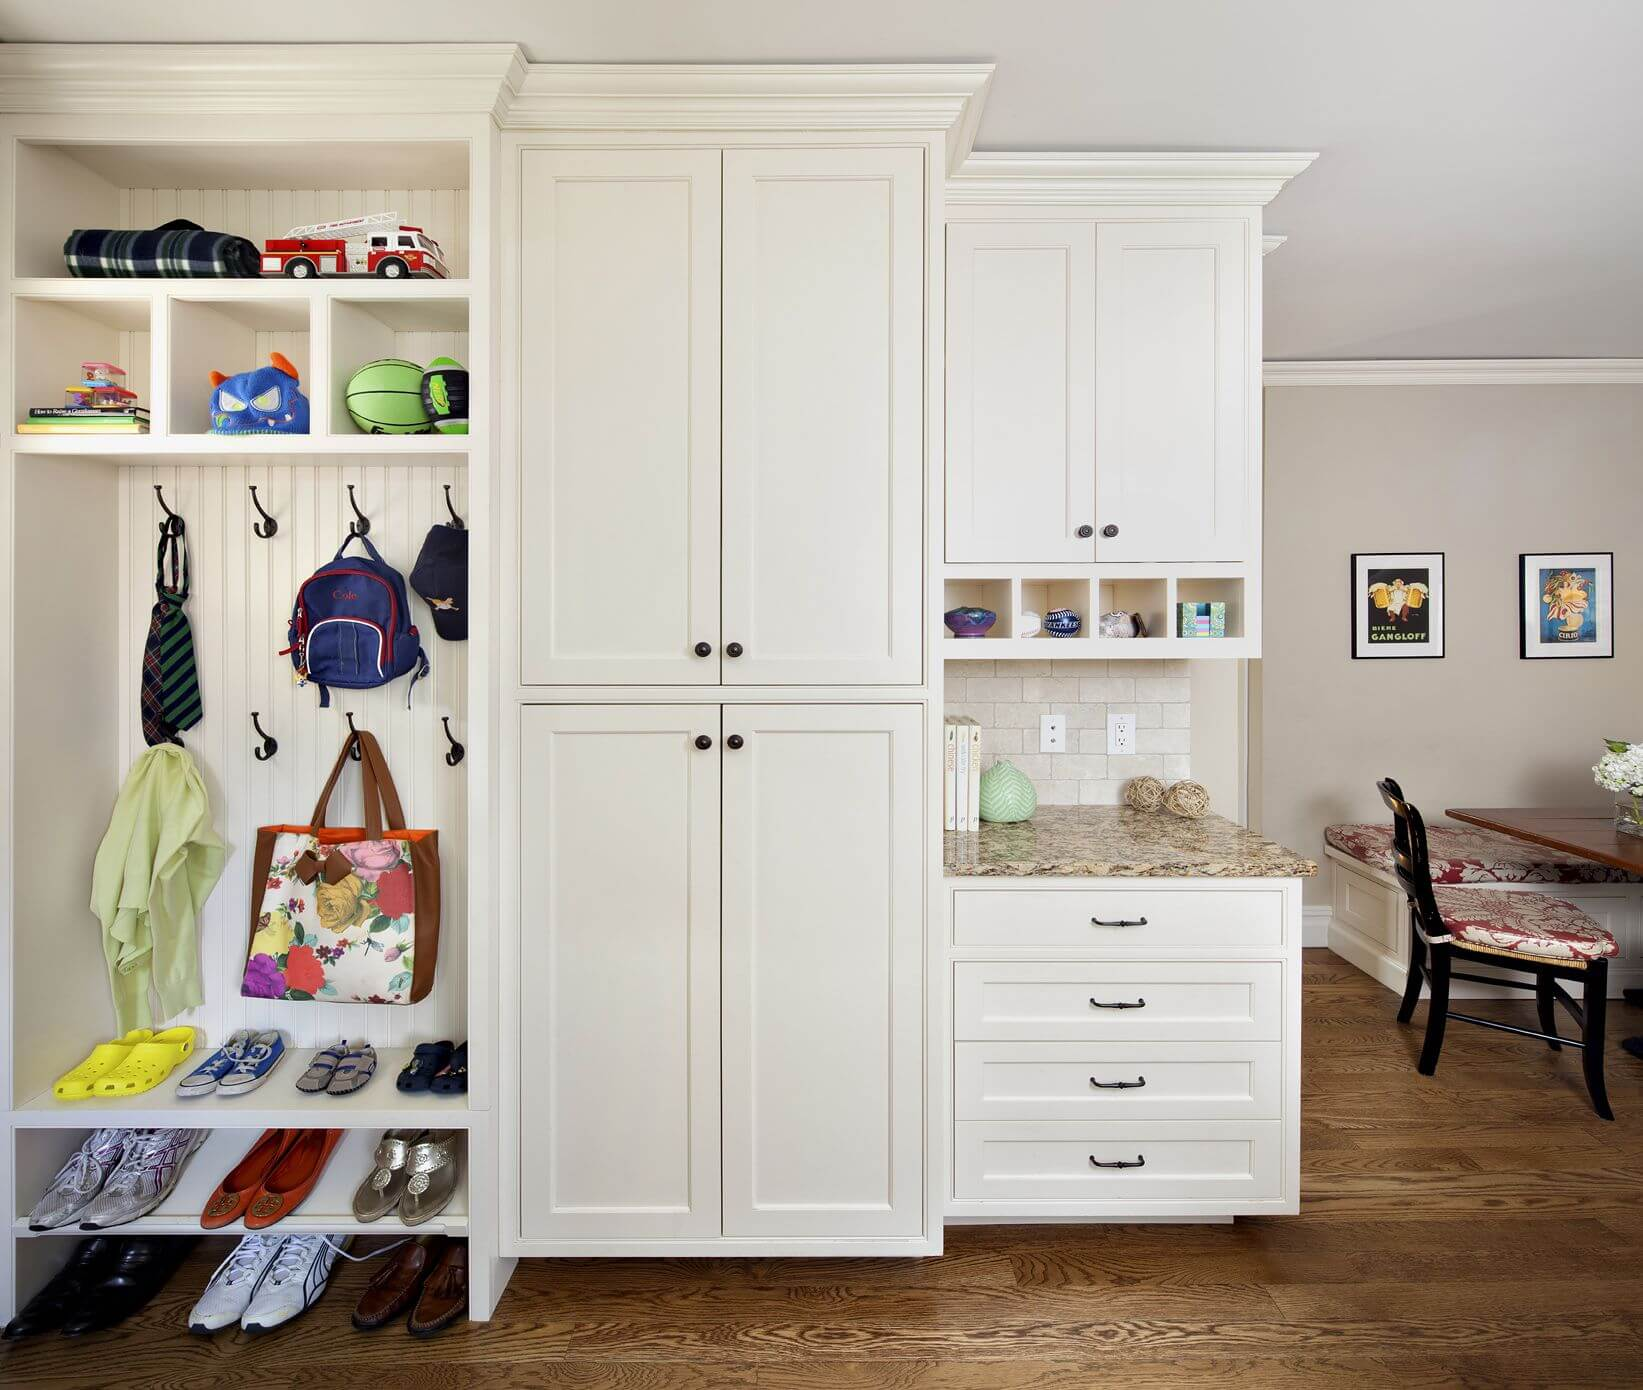 This Mudroom Seems To Be Tucked Away In The Corner Of Another Room And Is Very